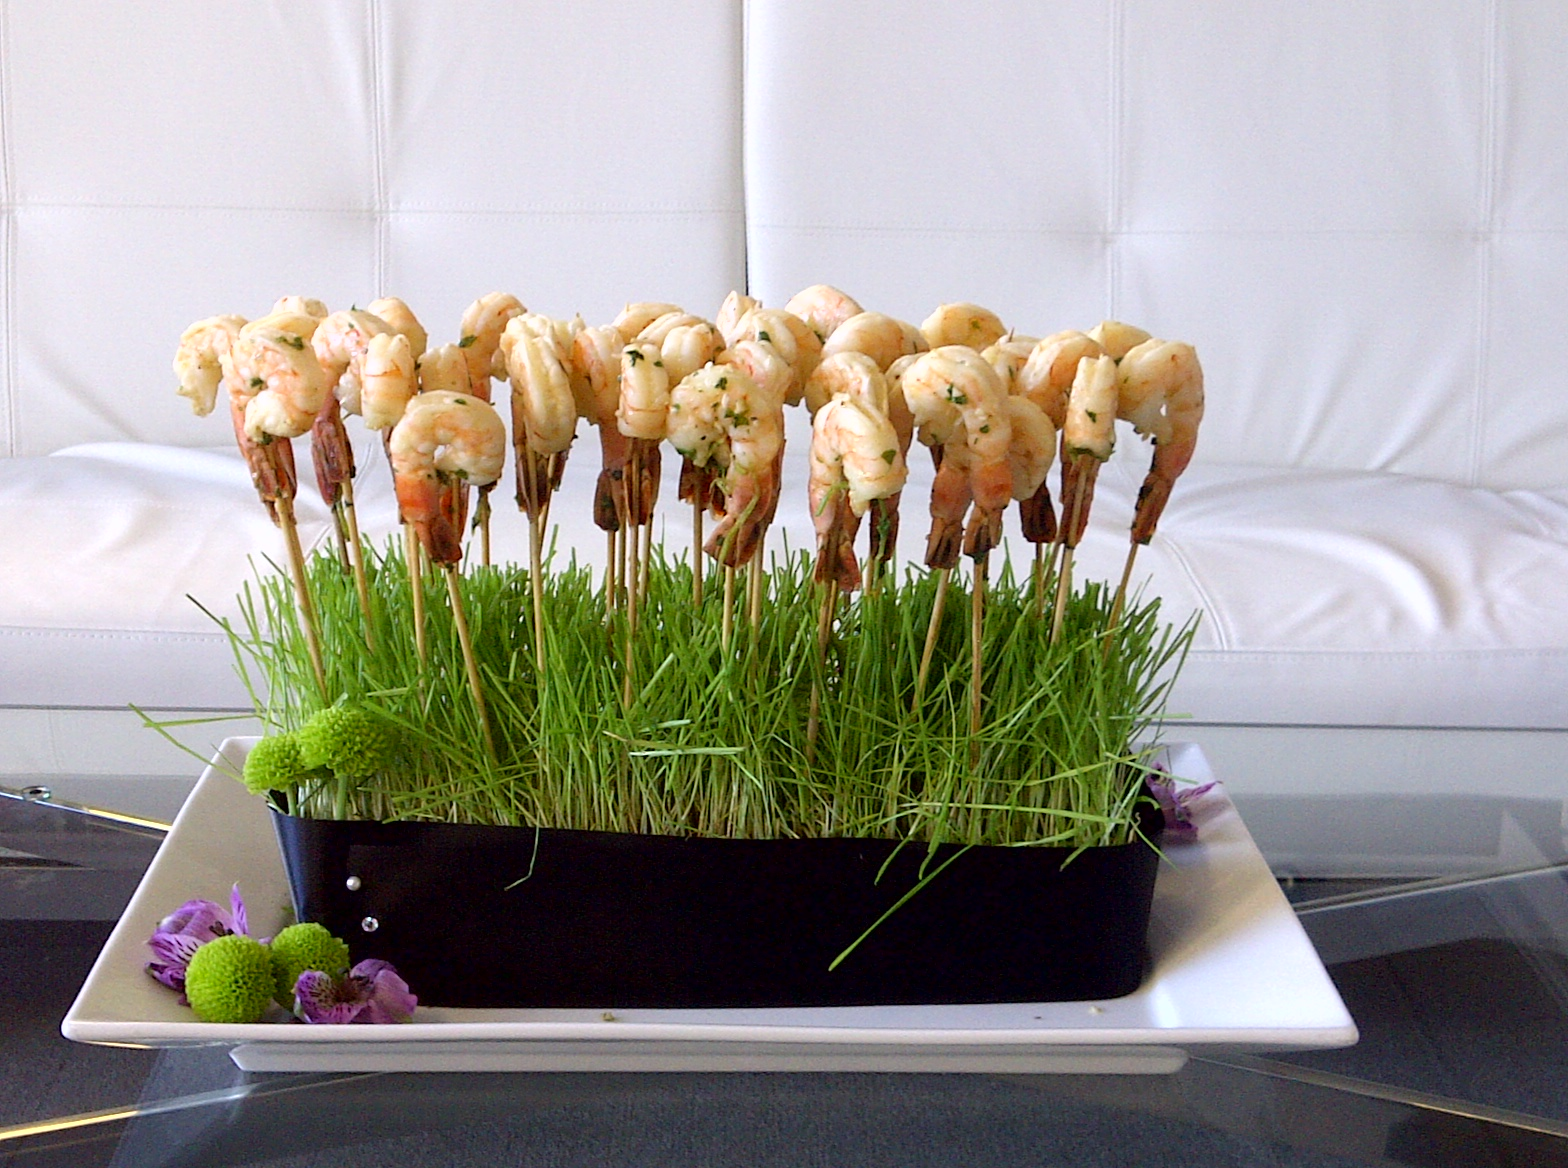 skewers of shrimp in grass on a glass coffee table in front of a white couch